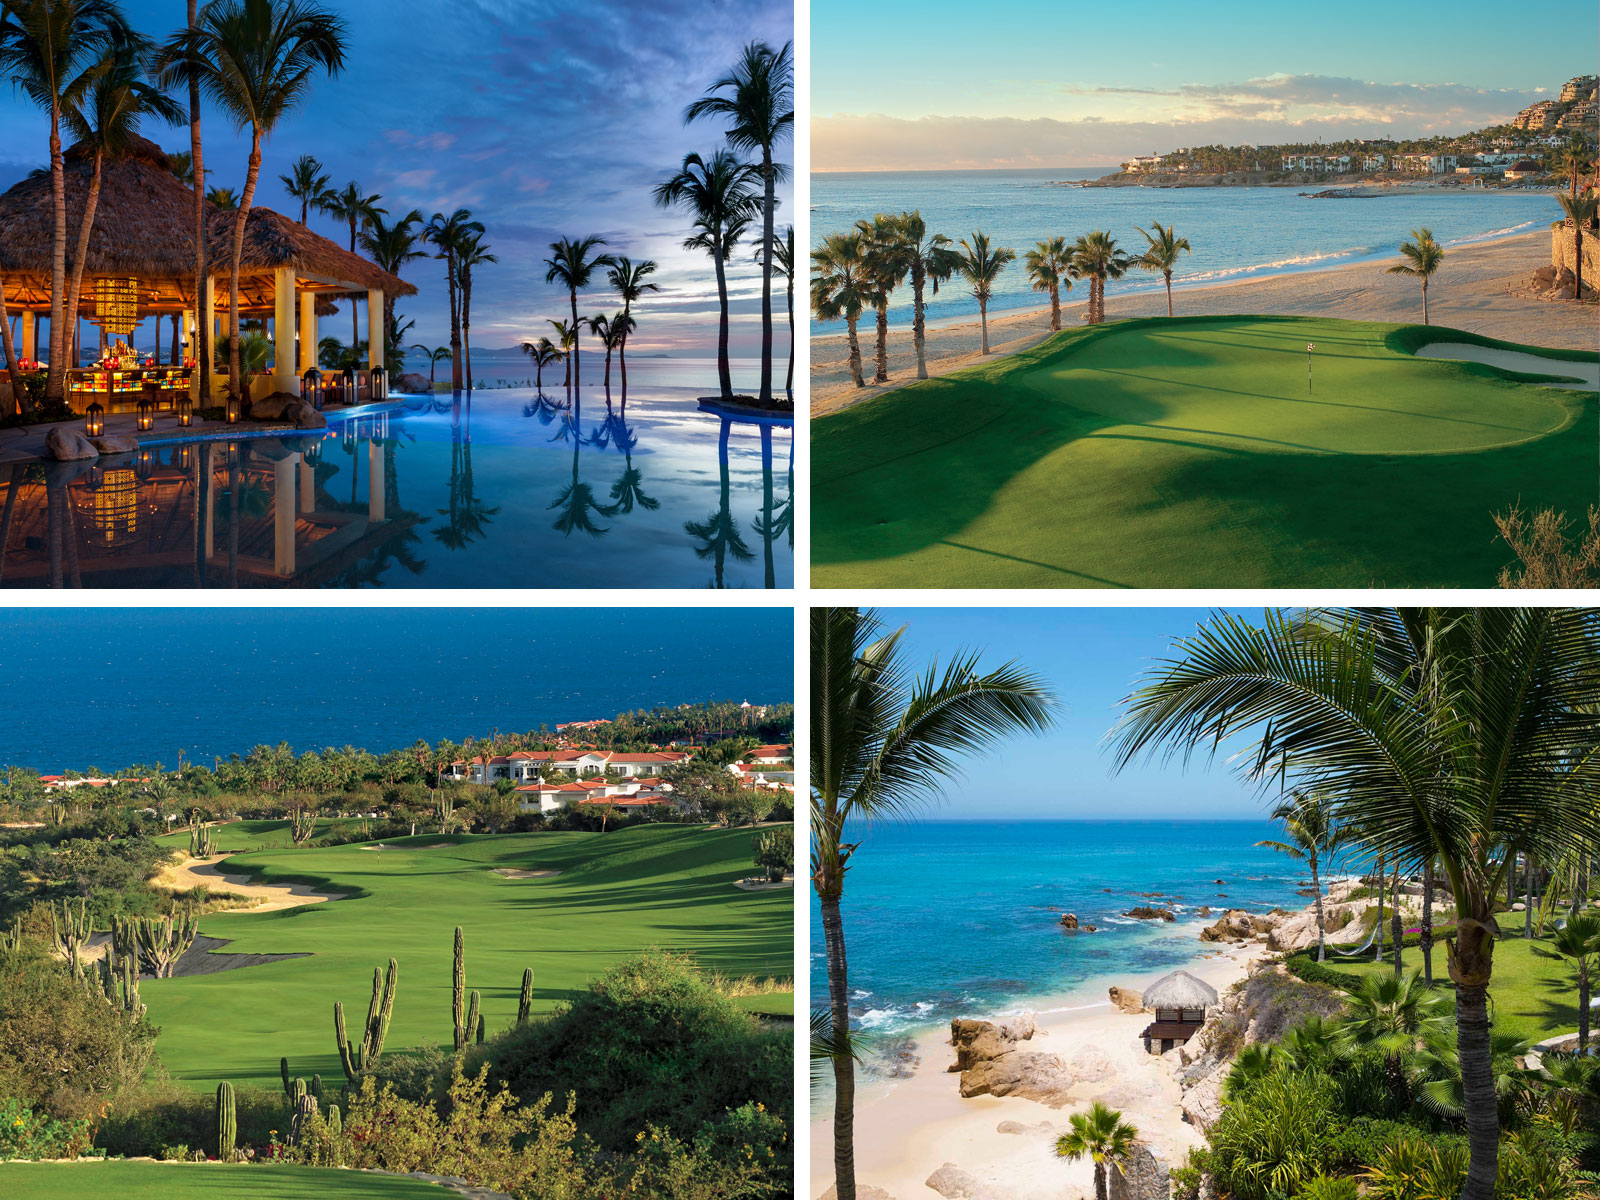 Los Cabos - Mexico's Must-Play, Golf Paradise